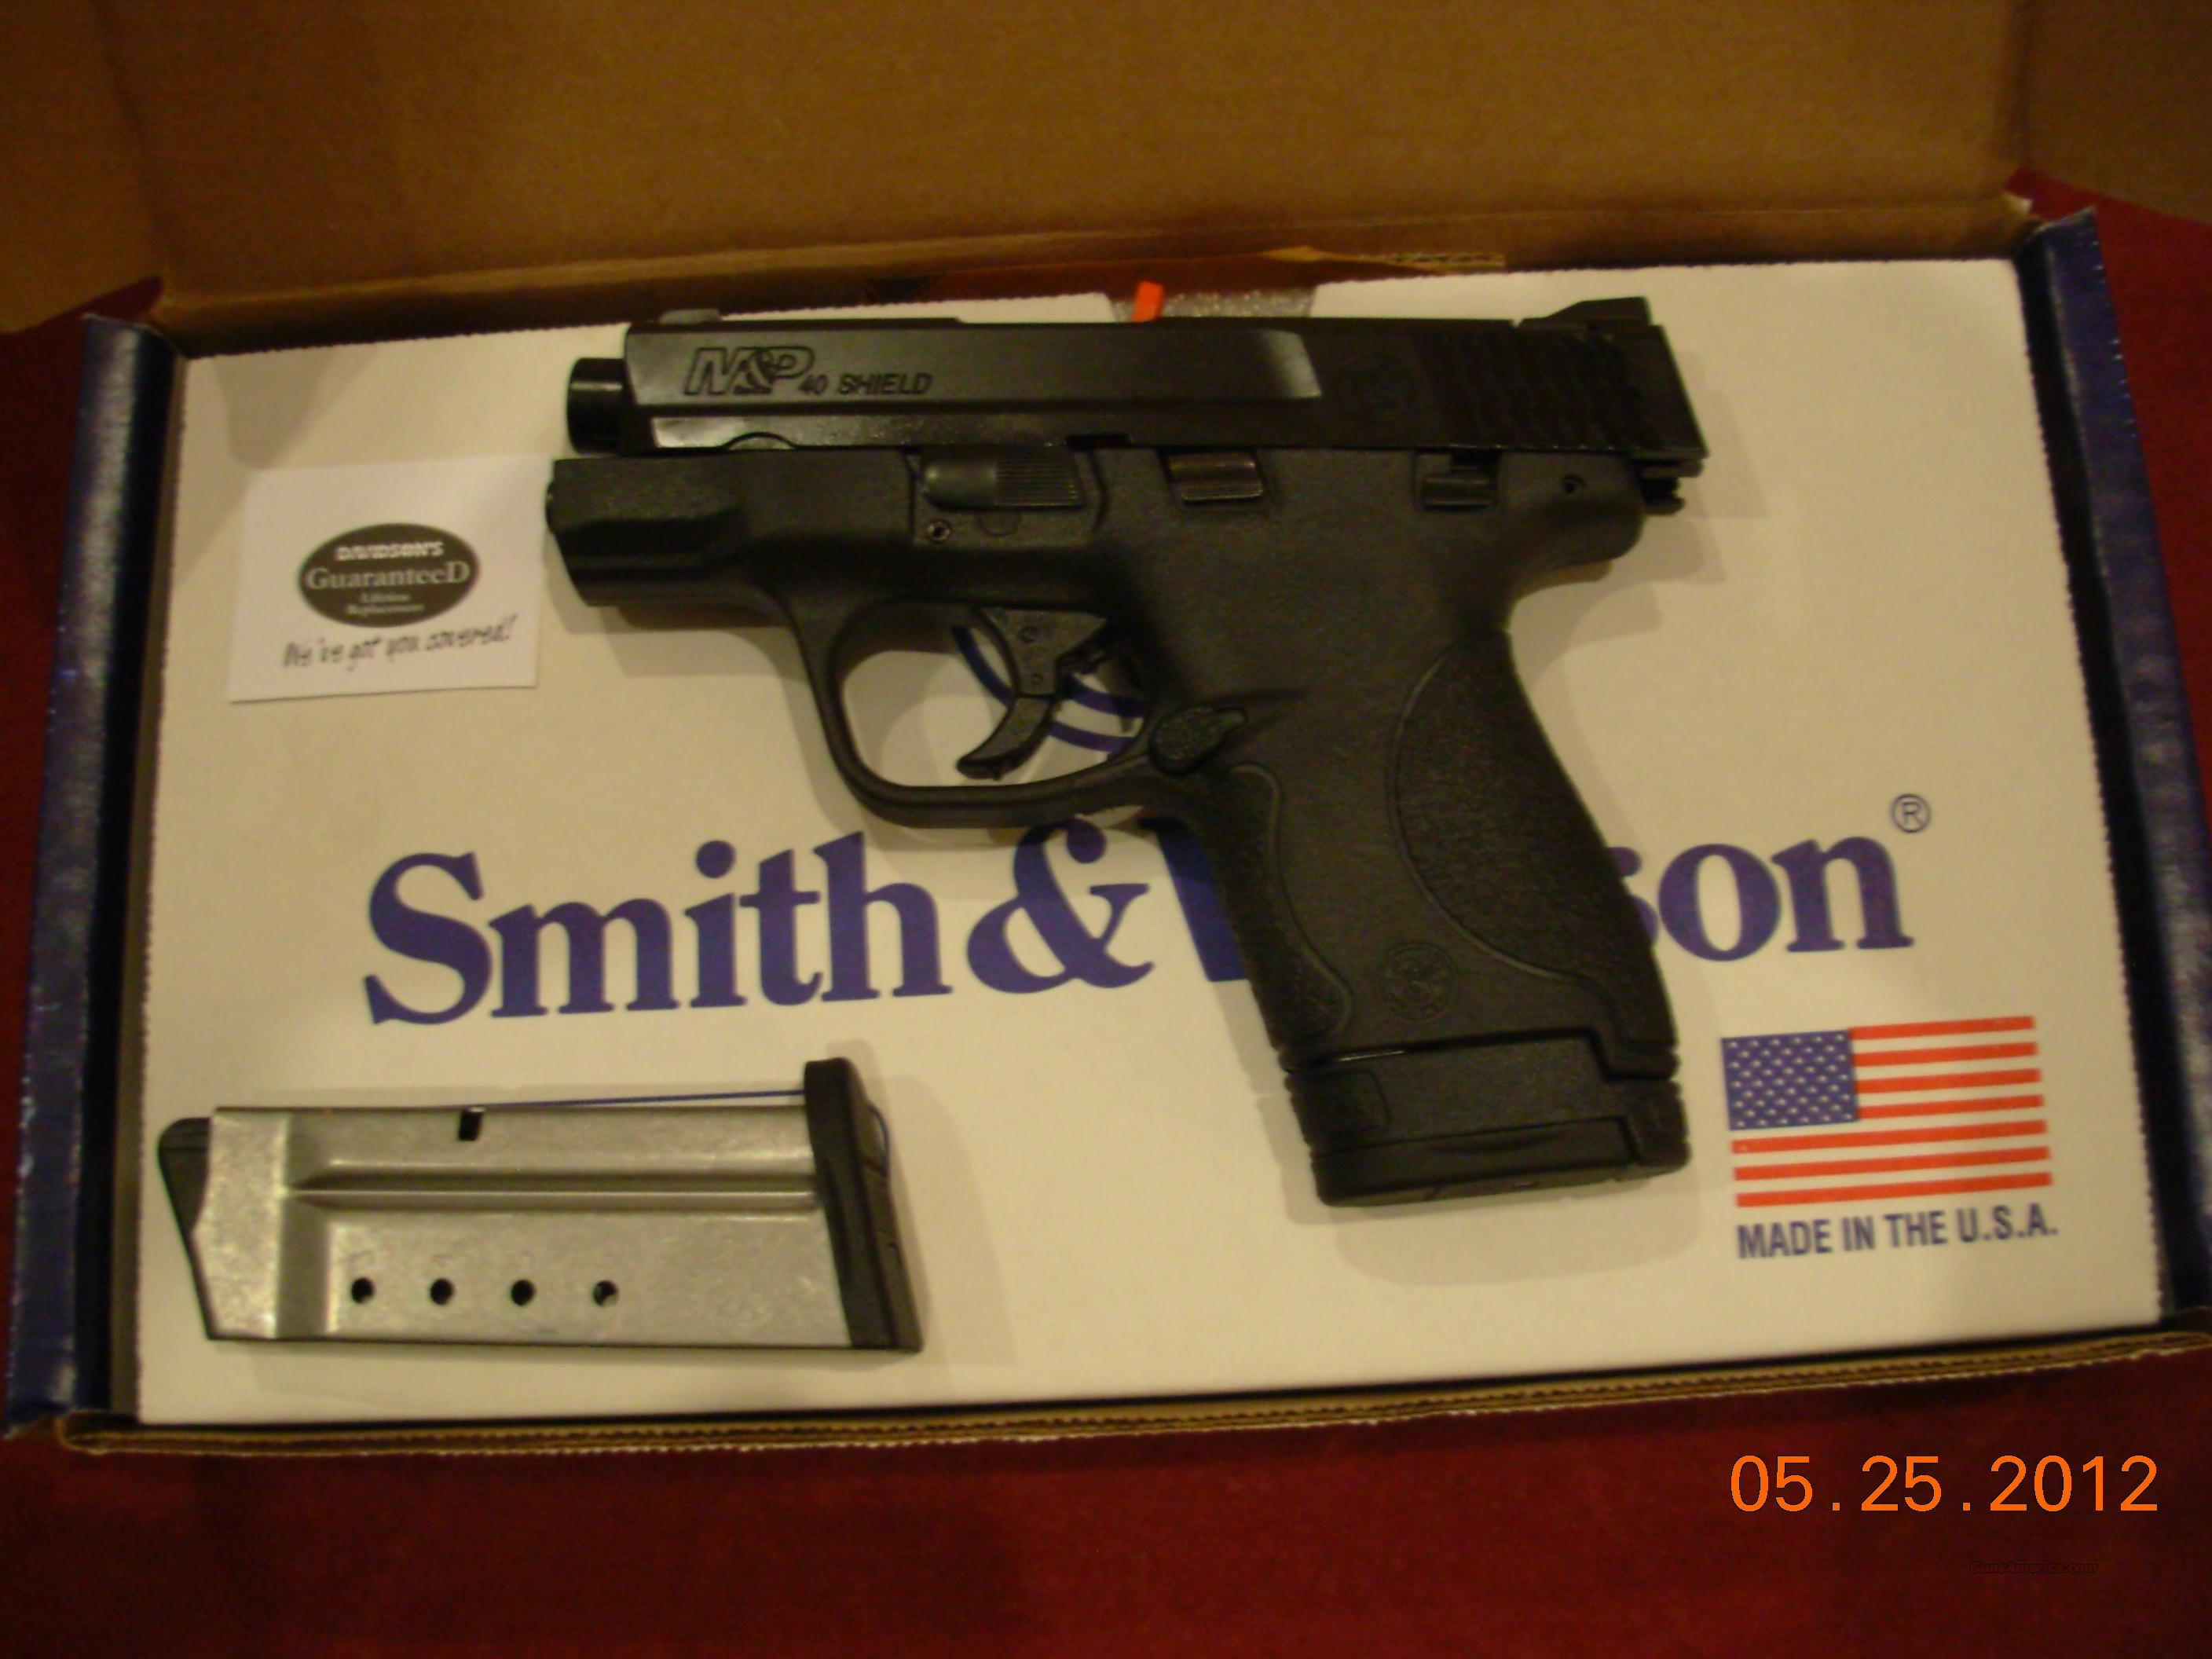 Smith & Wesson M&P Shield .40 S&W Nice & Flat - Great for Concealed Carry 8 Shot 2 Magazines  Guns > Pistols > Smith & Wesson Pistols - Autos > Polymer Frame